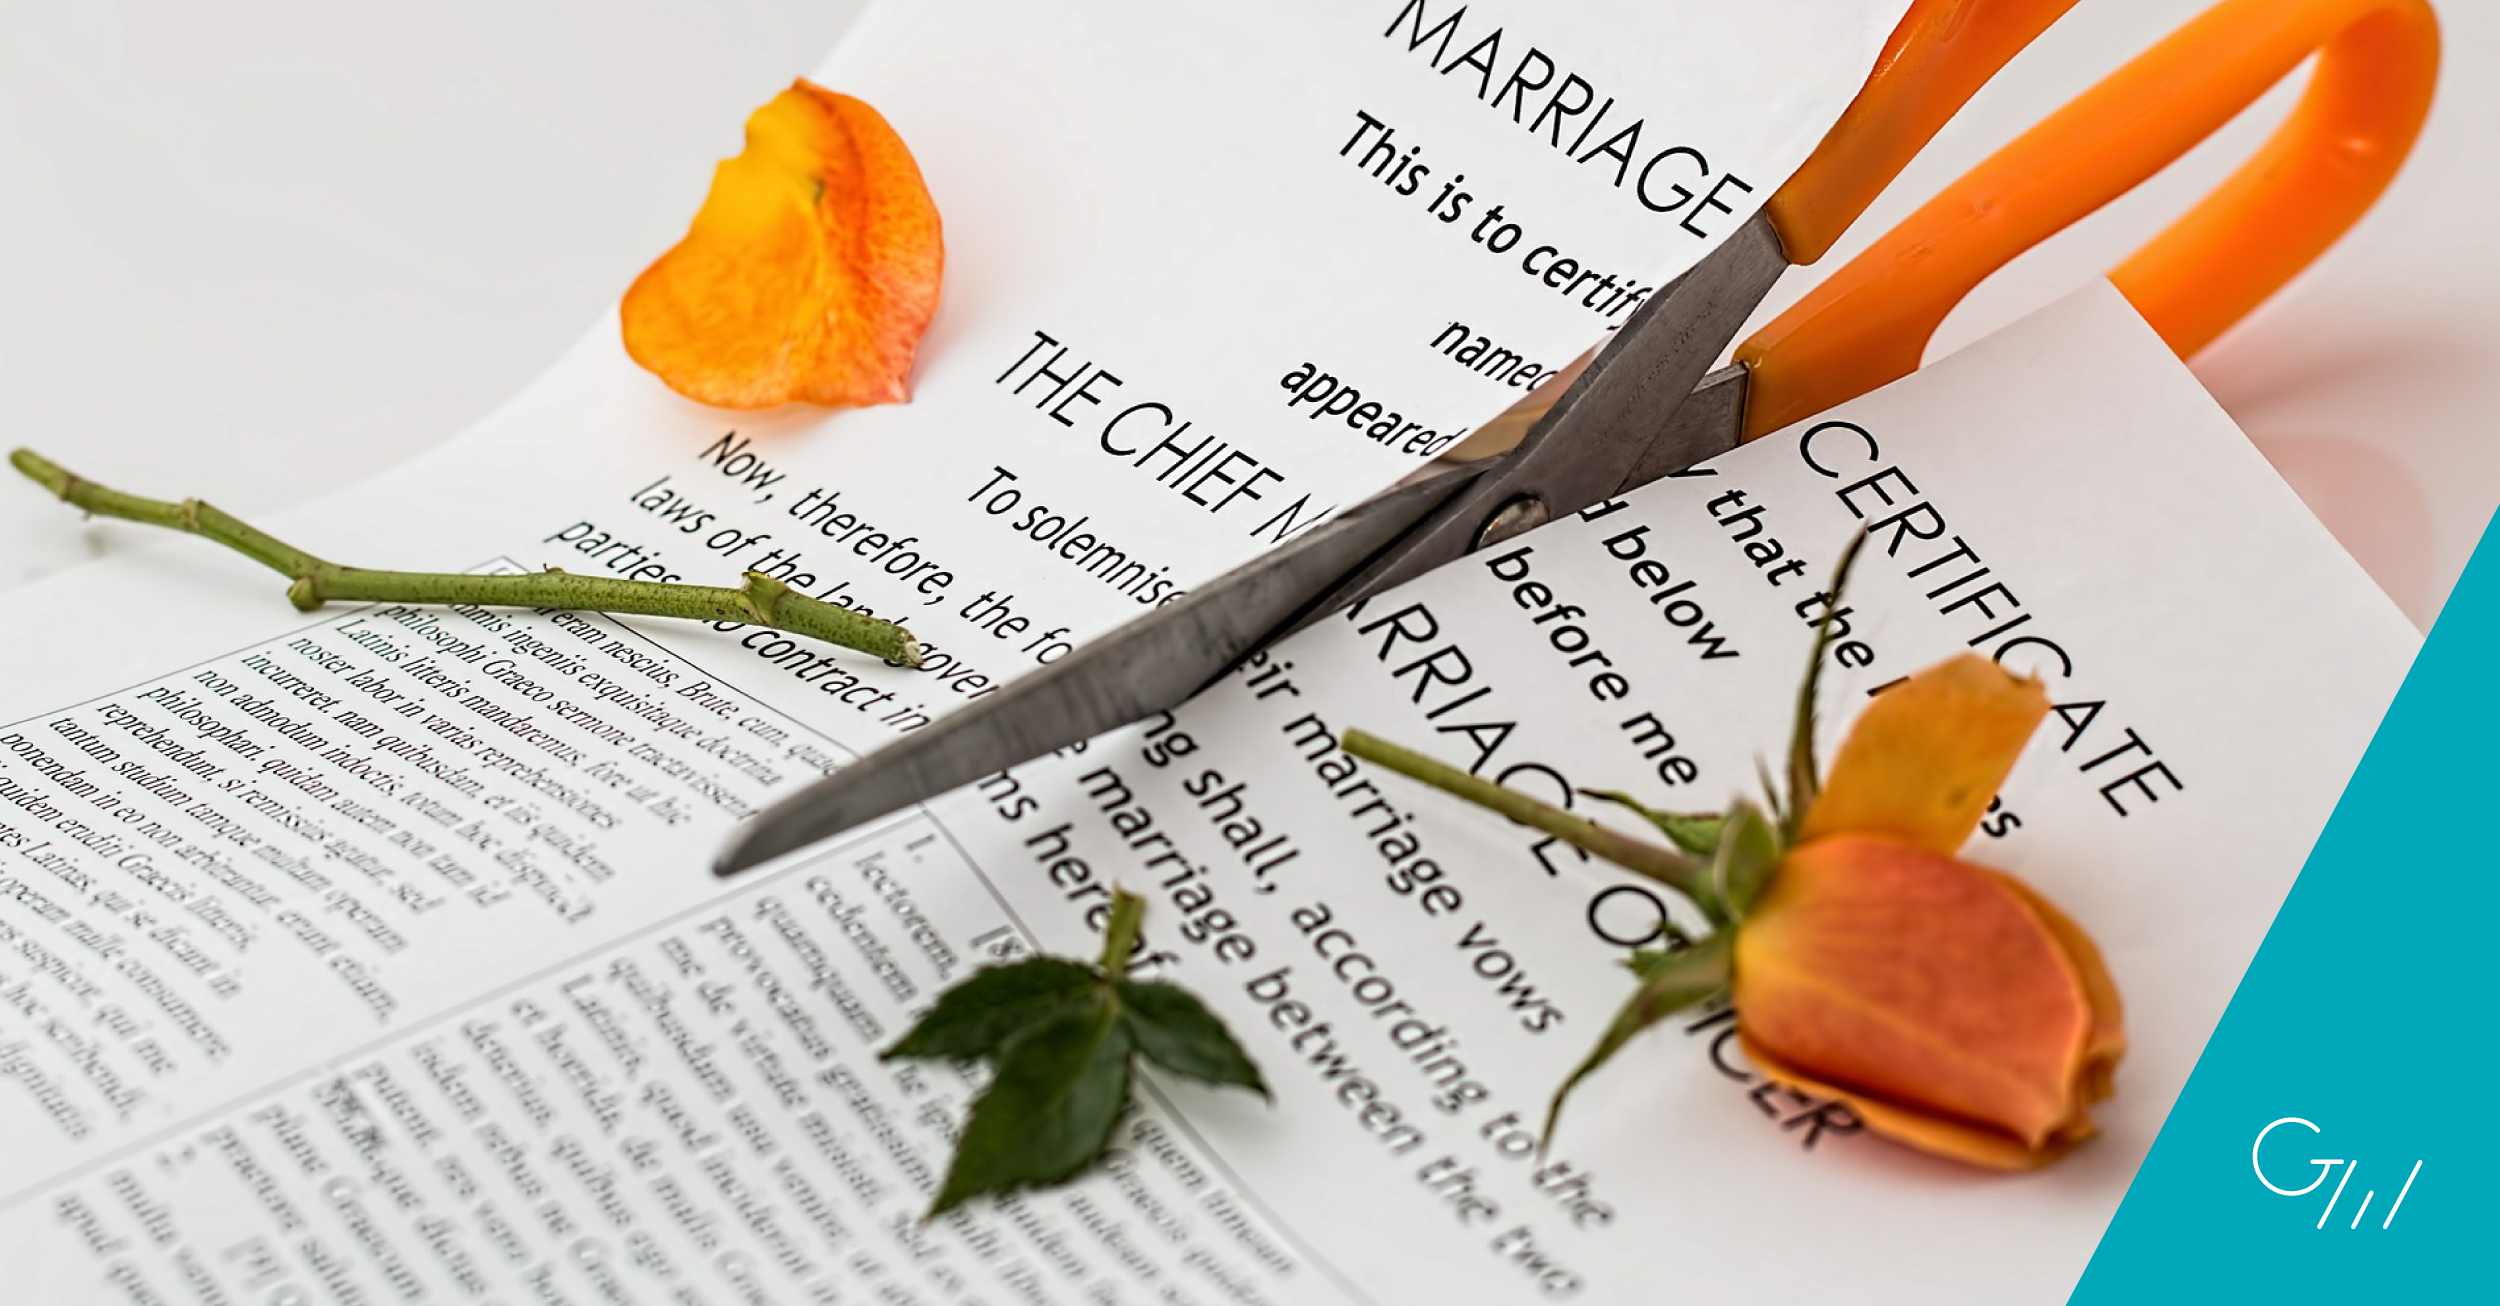 Owens vs Owens Case: Are Divorce Laws Outdated?